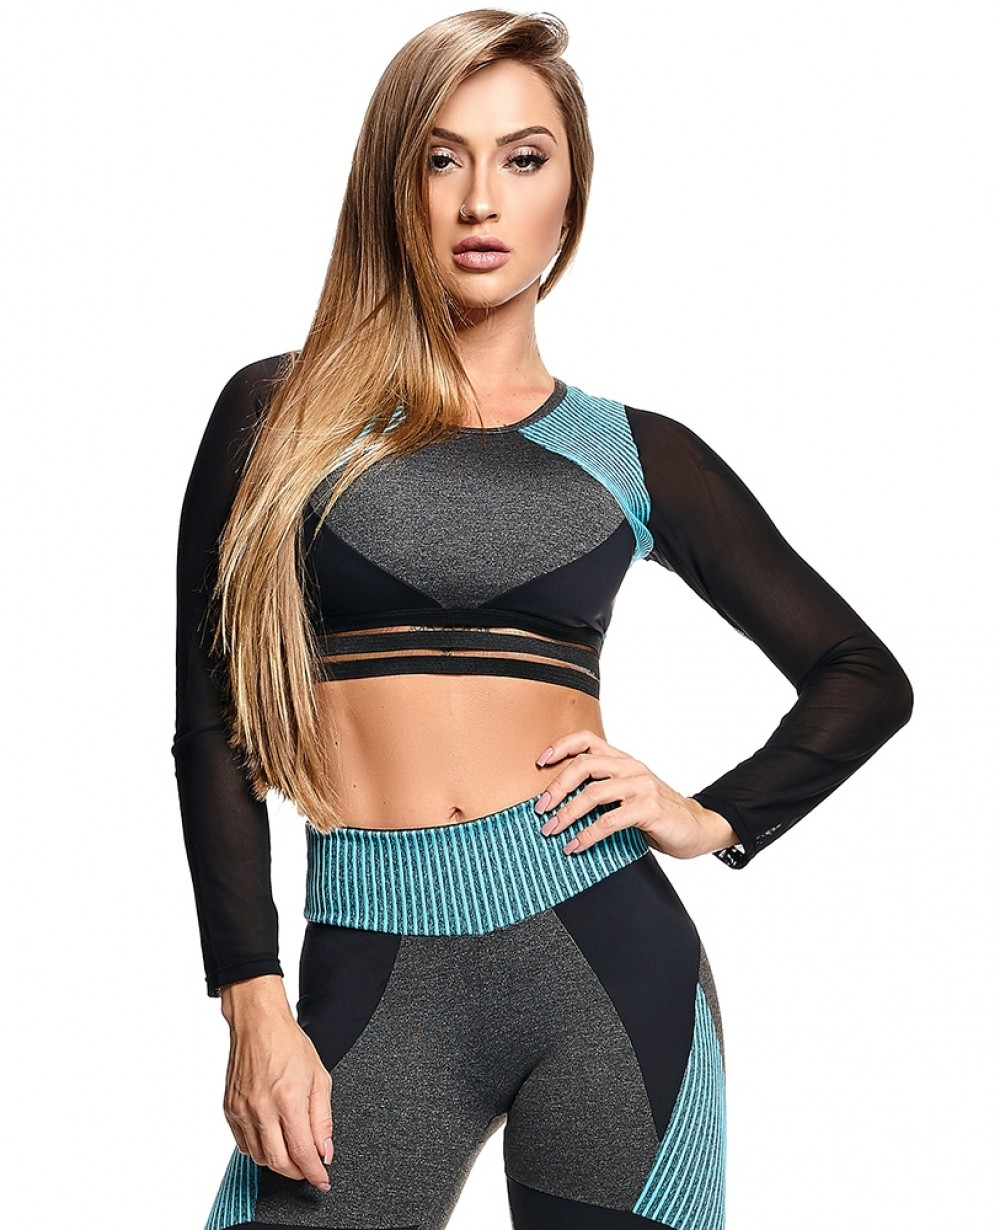 CROPPED ACTIVE STRAPPYS